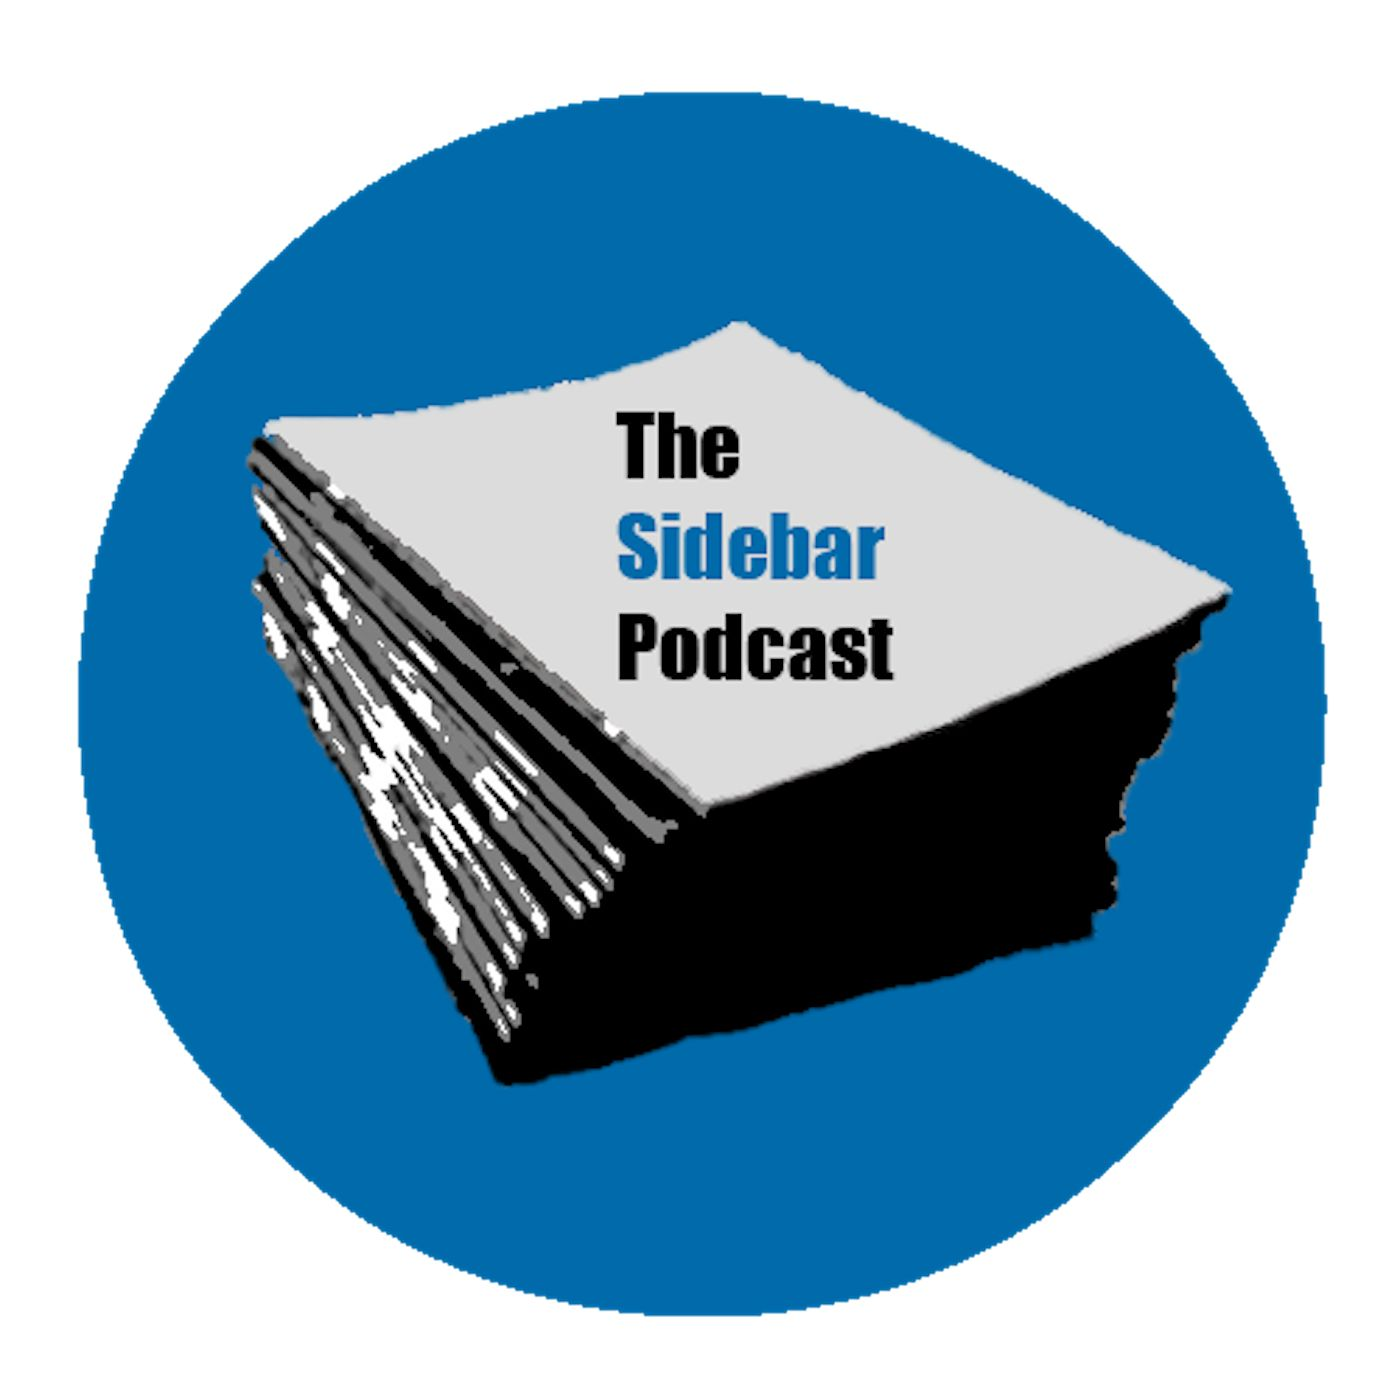 5a75ac48c1d4  The Sidebar Podcast on Apple Podcasts